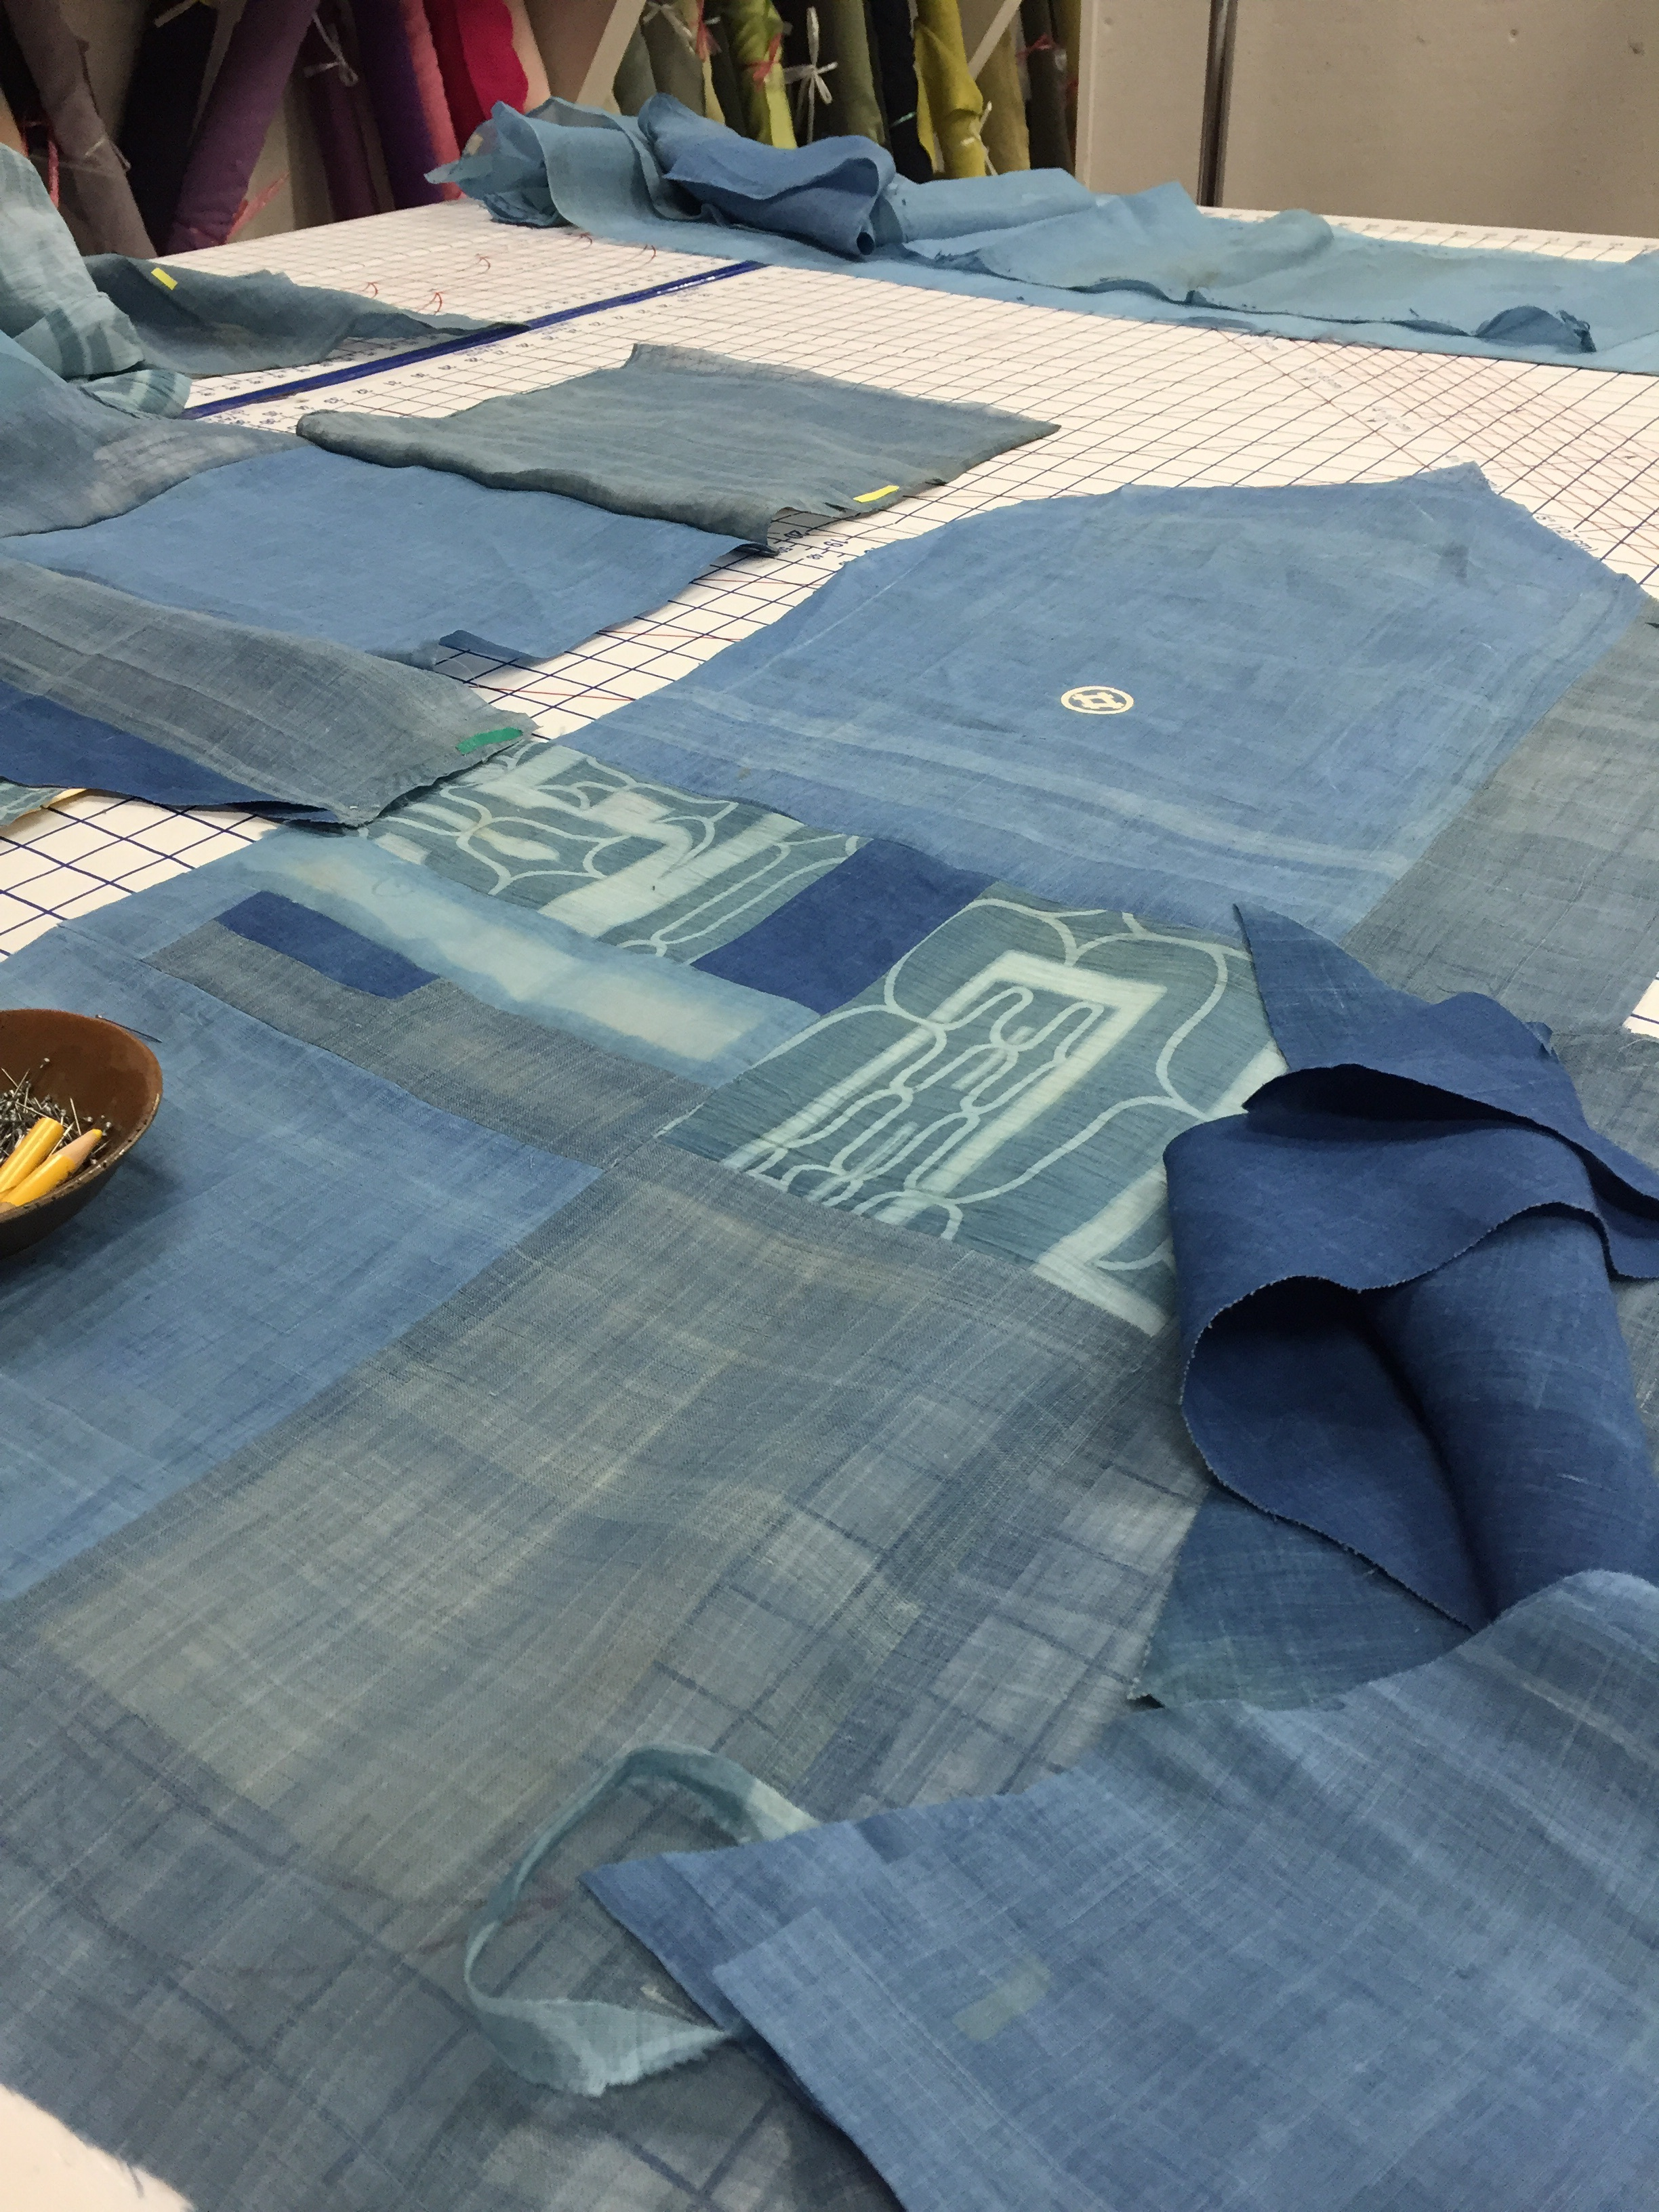 Linen patchwork being laid out on Sarah's table.